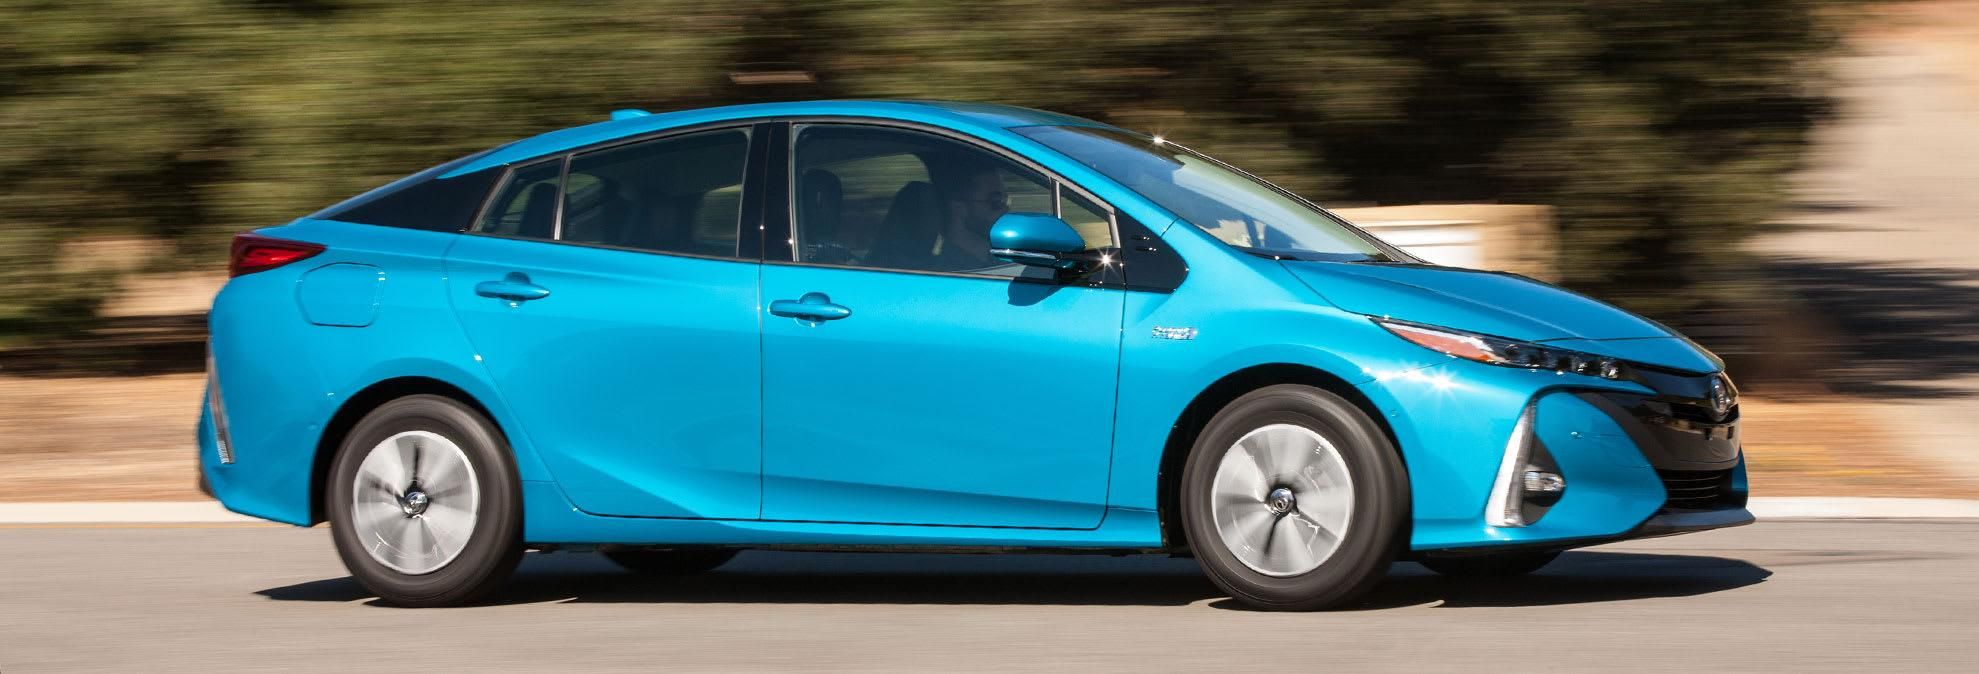 Federal Tax Credit For Buying Electric Car